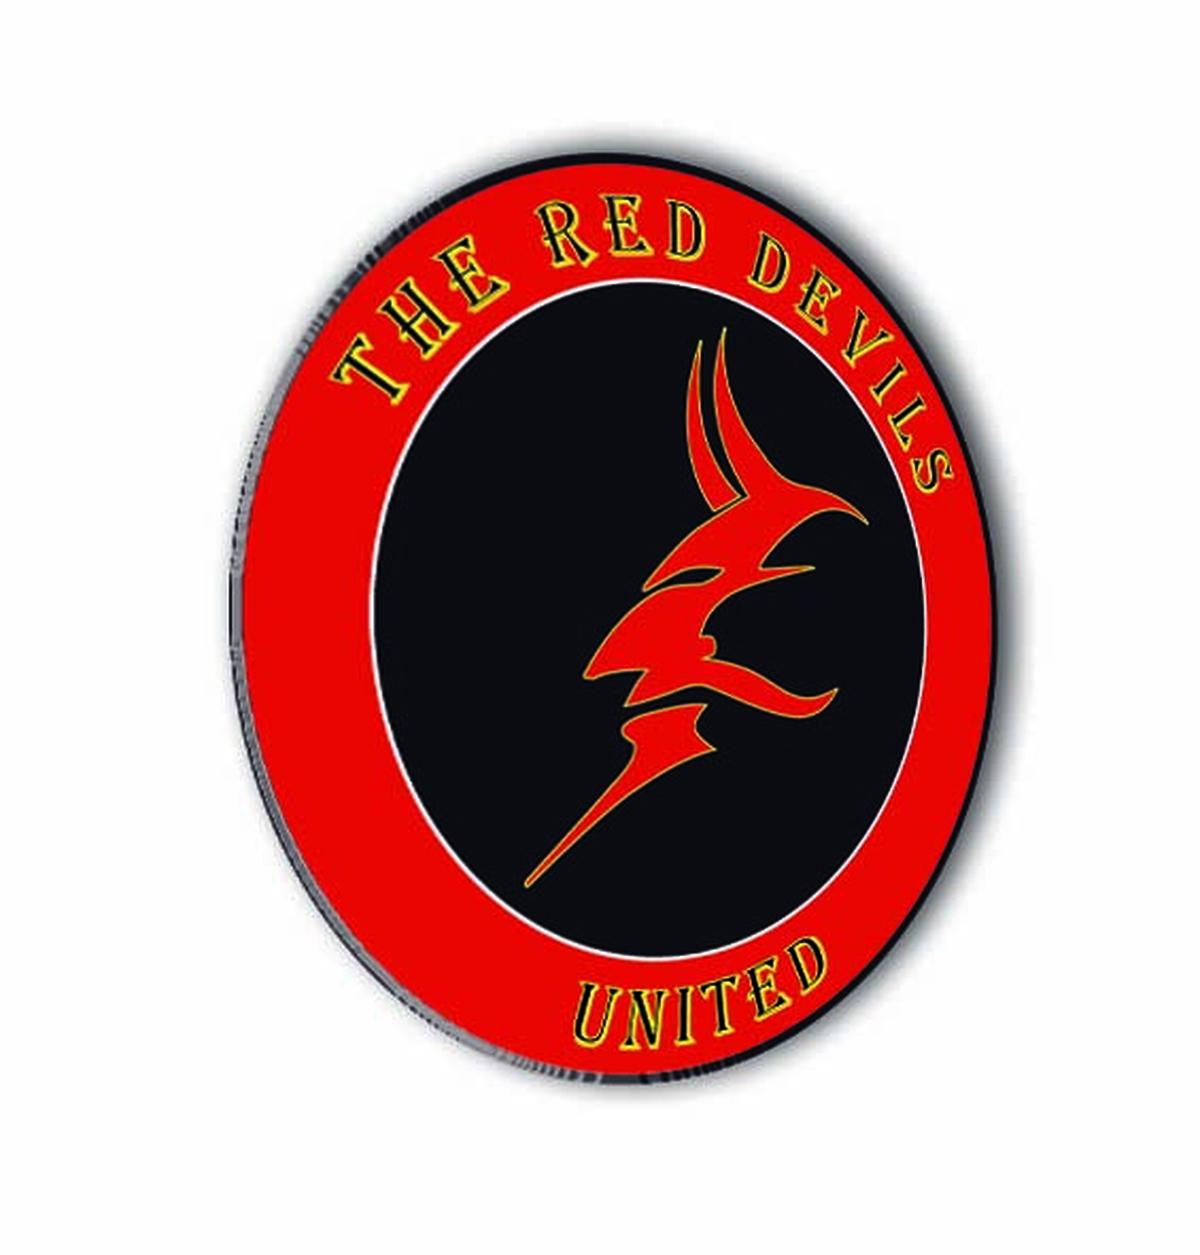 The Red Devils United 1